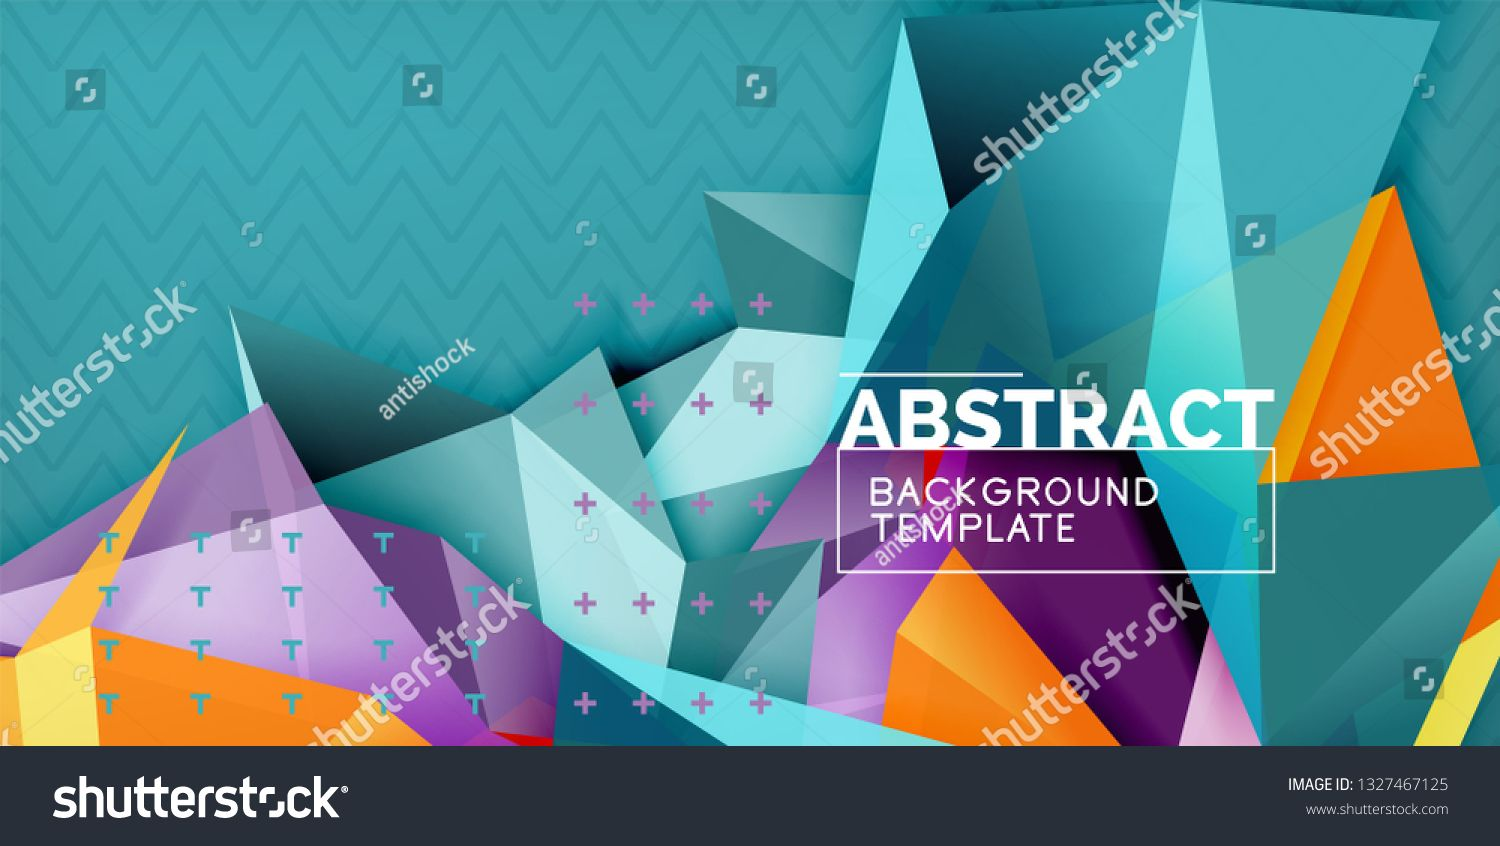 Color Geometric Abstract Background Minimal Abstraction Design